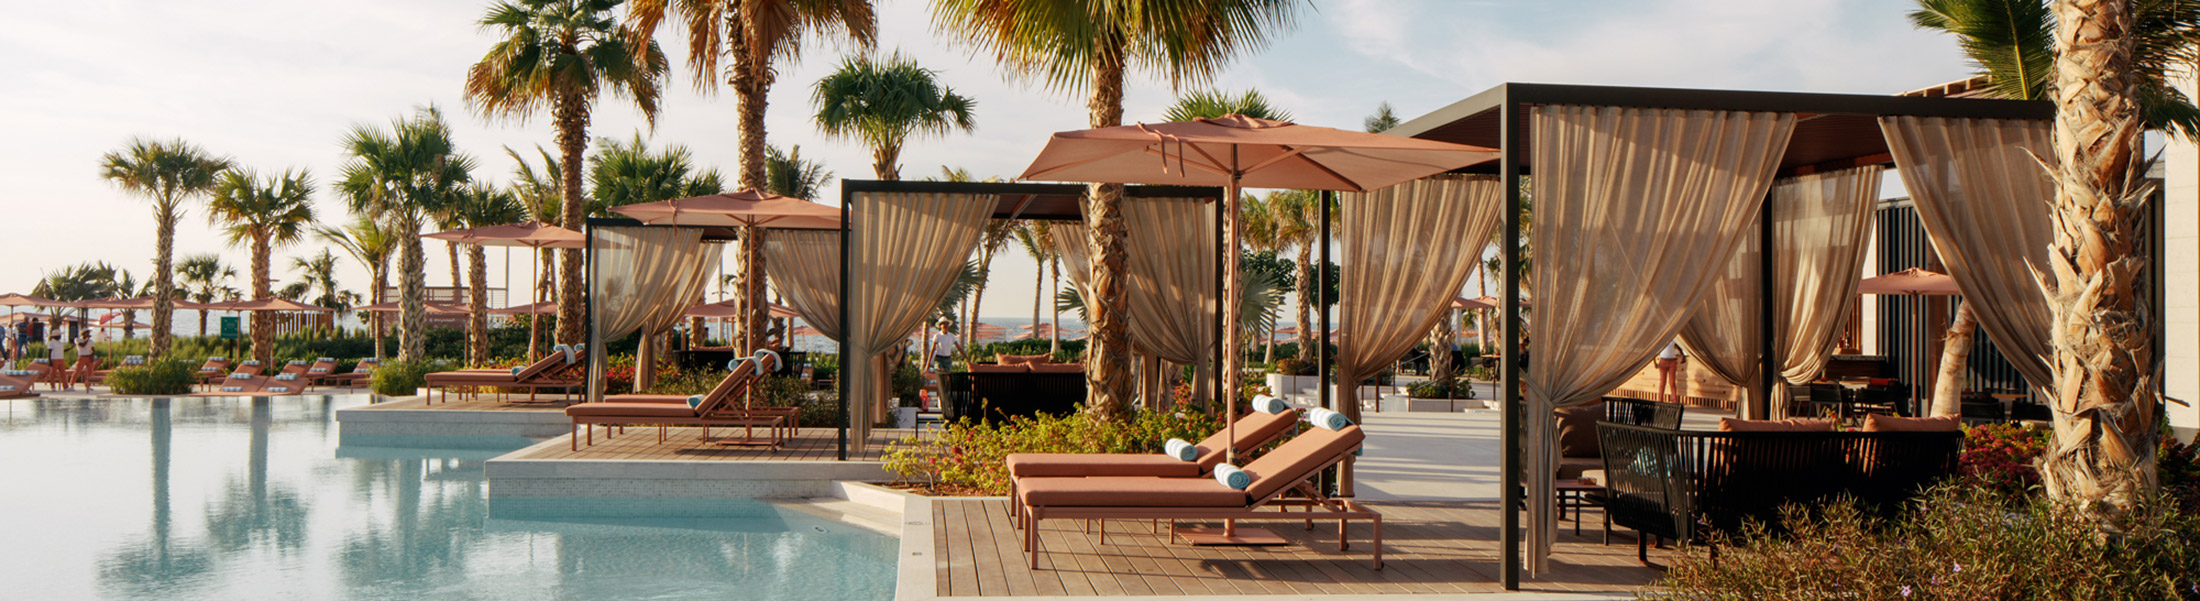 Pool cabanas at Caesars Palace Bluewaters